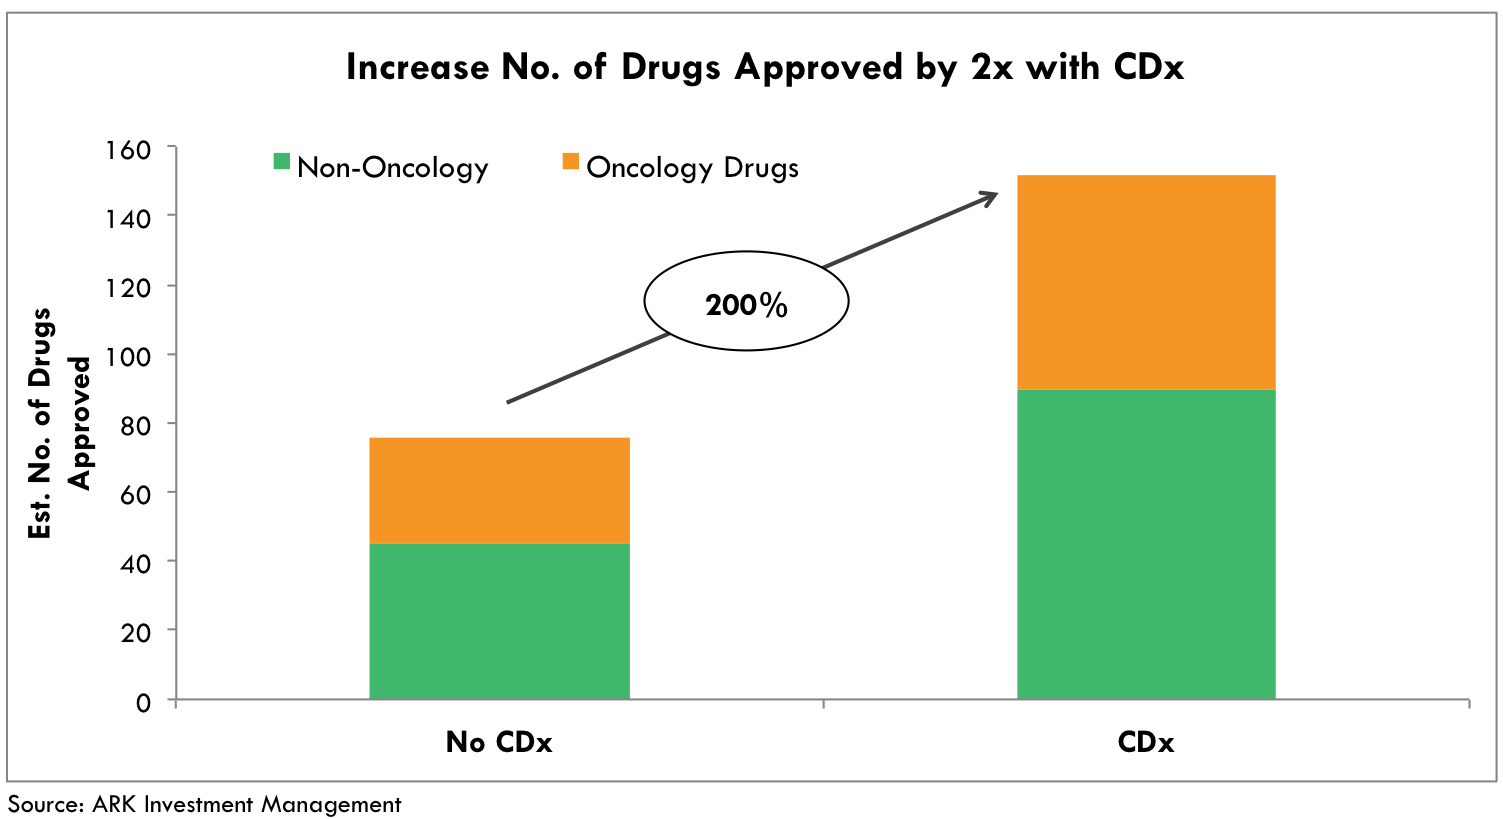 drug approval, Companion Diagnostics, cdx, drug approval process, health care, diagnostics, ark research, healthcare innovation, invest in healthcare, ark invest